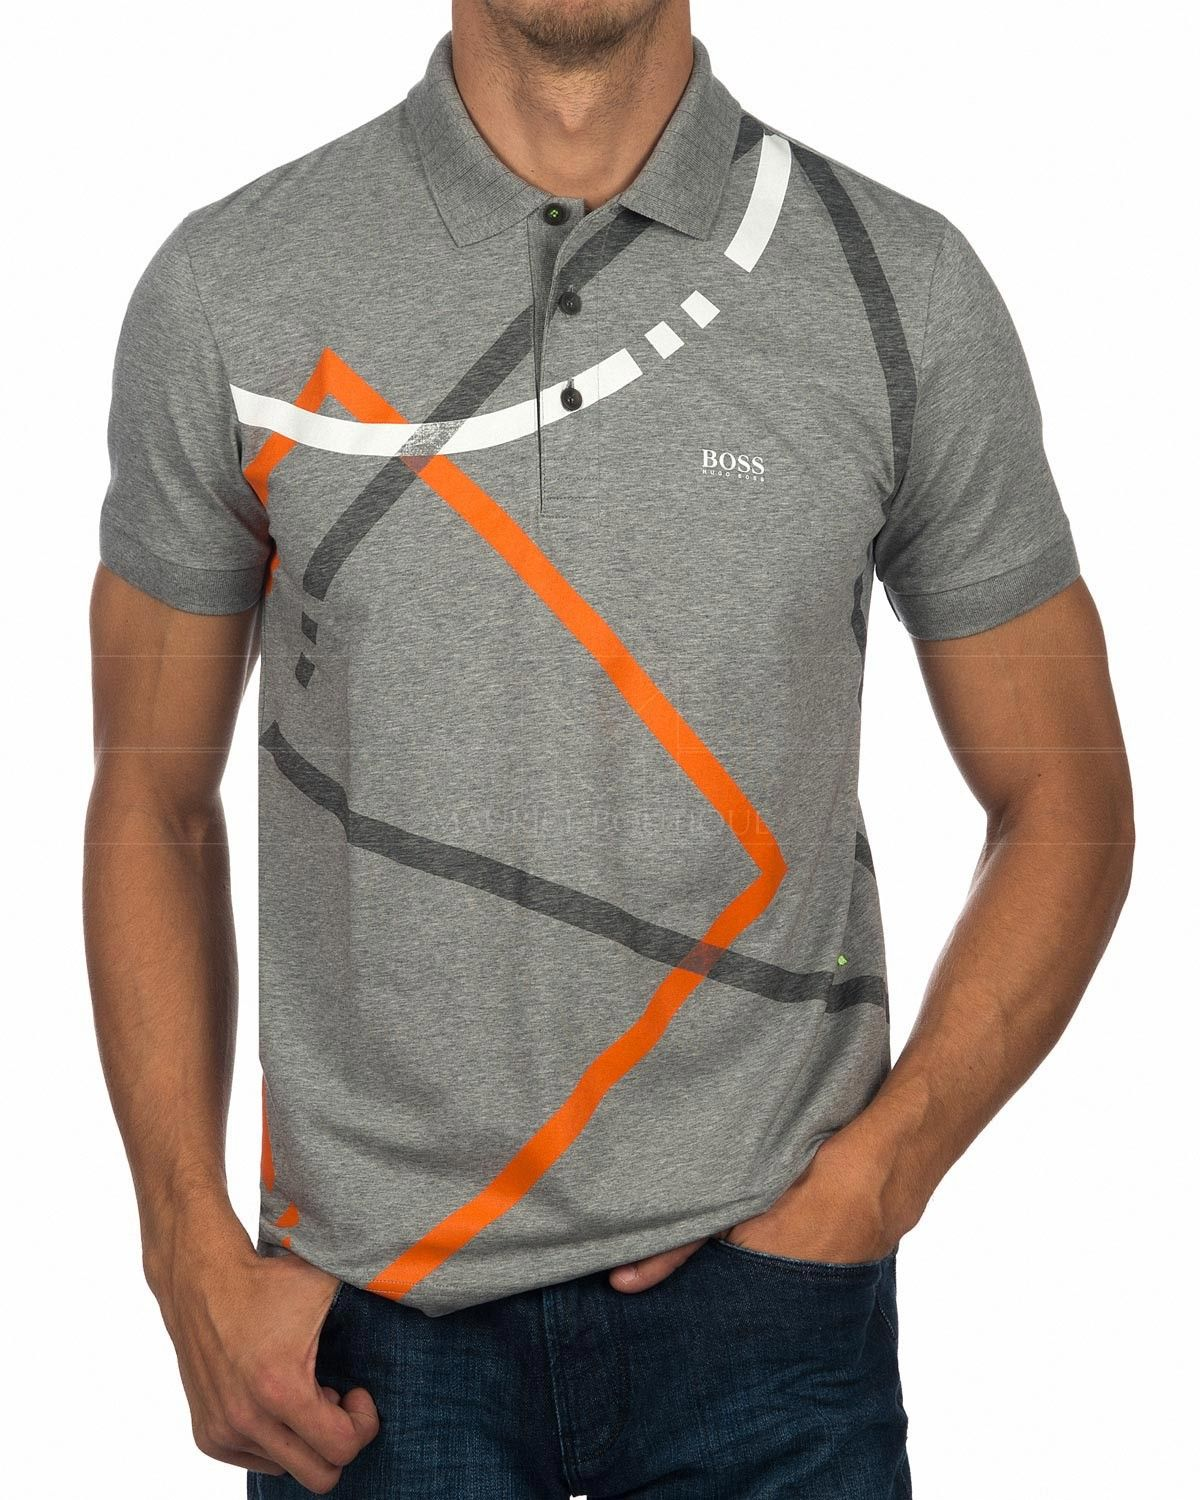 b685b0e814c92 Polos Hugo Boss Gris Pastel - Paddy 4 in 2019